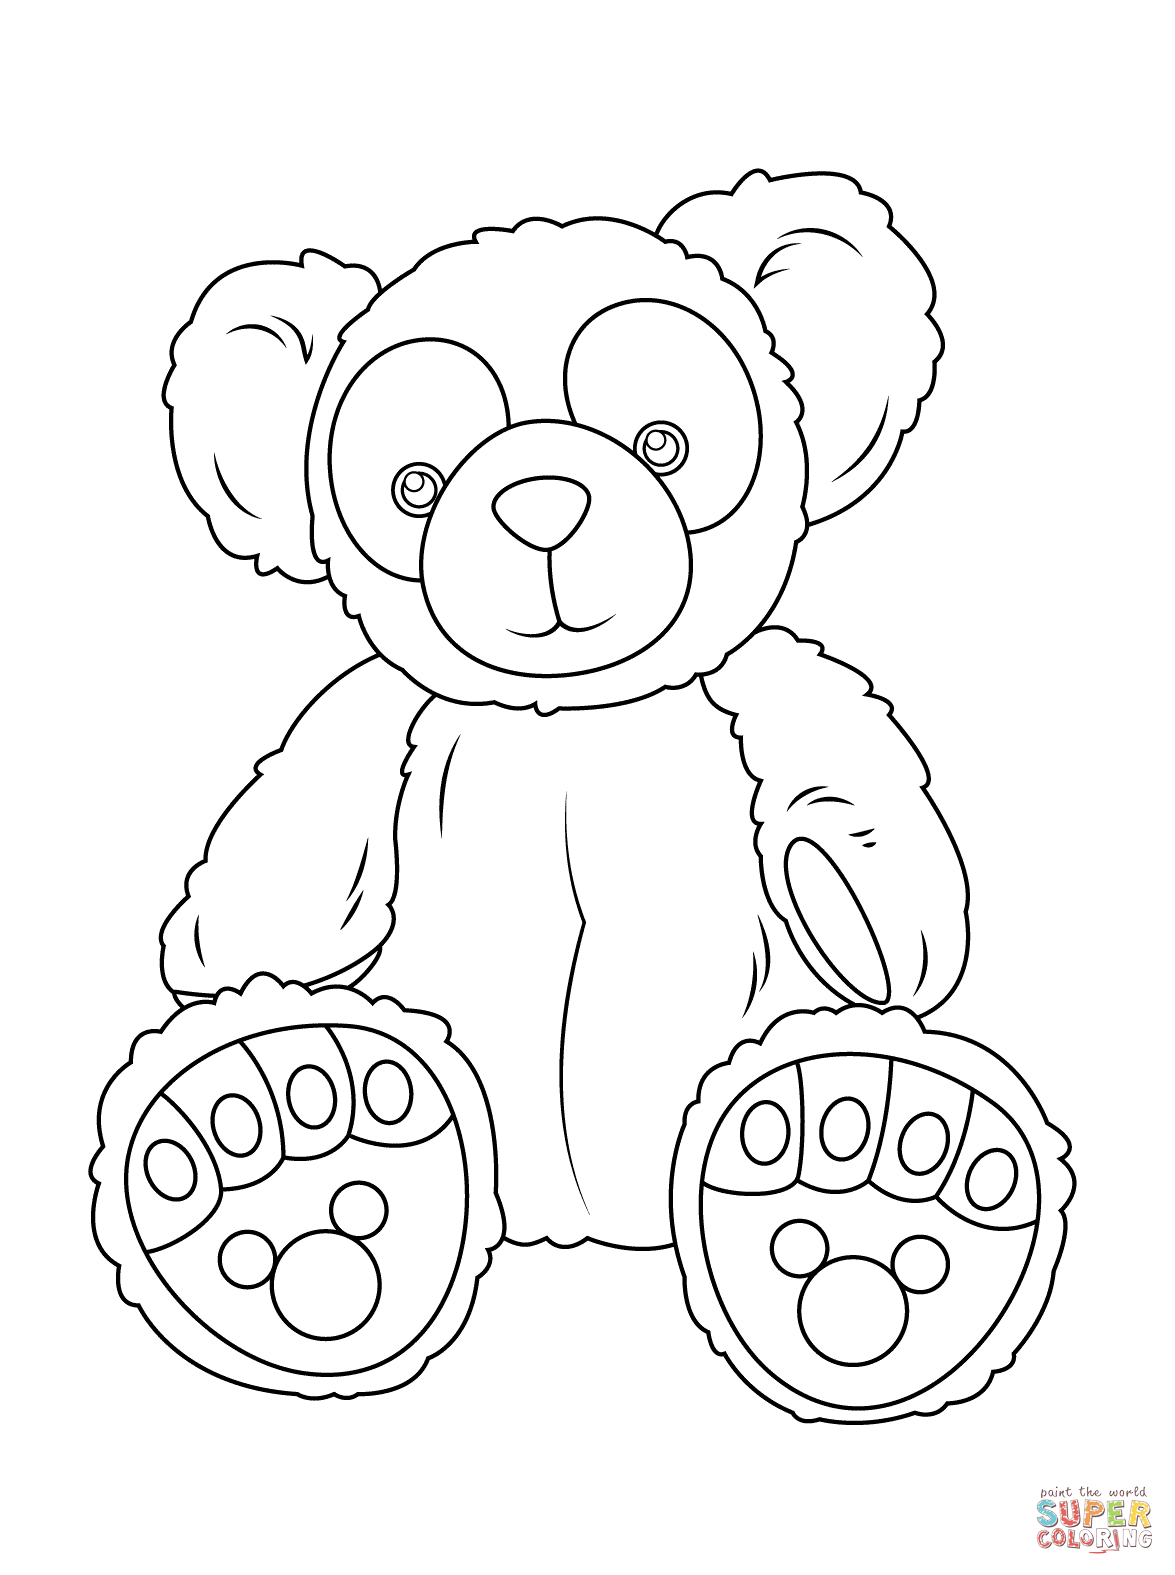 pudsey bear colouring pages free children in need bear colouring pages bear pudsey free